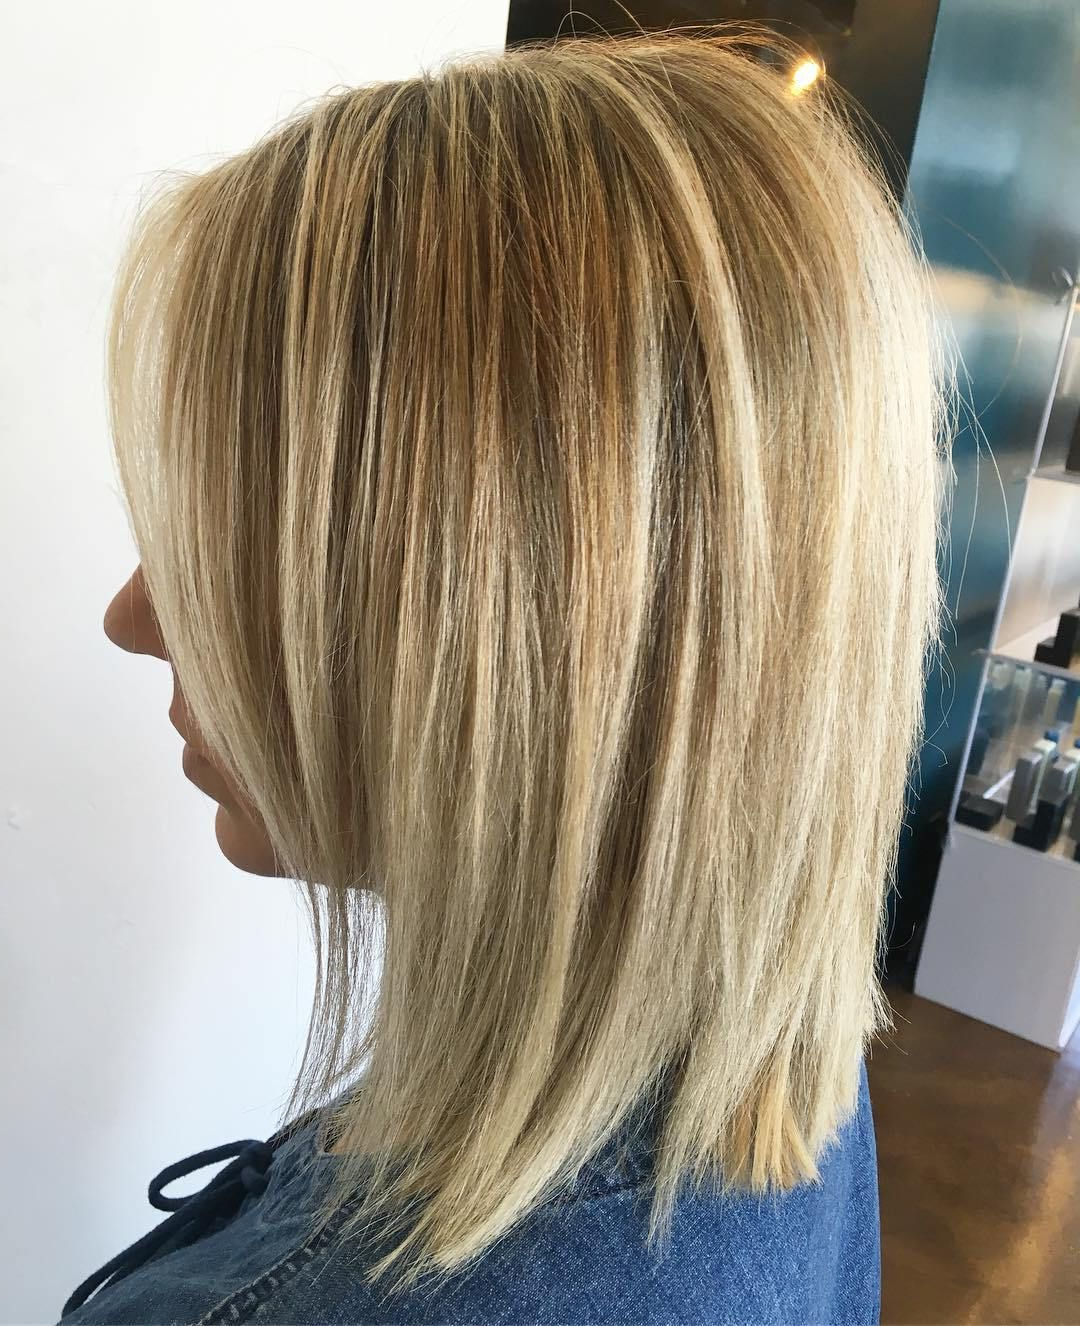 70 Perfect Medium Length Hairstyles For Thin Hair In 2019 In Blonde Bob Haircuts With Side Bangs (View 9 of 20)